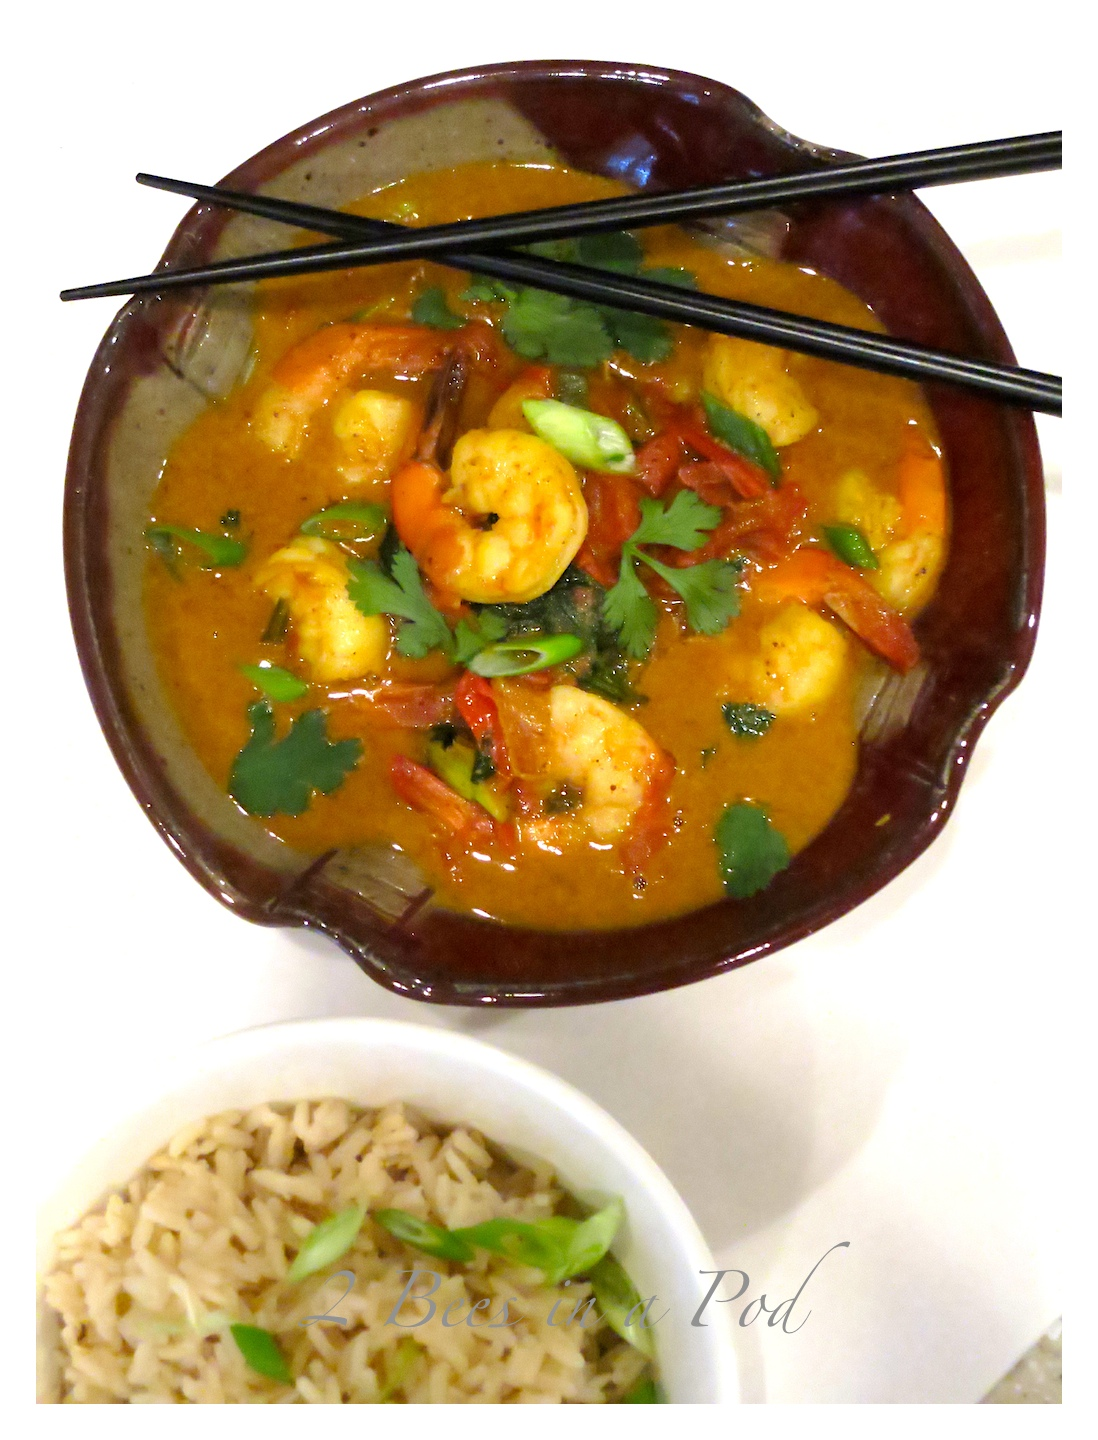 Coconut Curry Shrimp Light - packed with delicious Thai flavors! Weight Watchers friendly - only 8 PPV :) Curry, light coconut milk, scallions, cilantro, shrimp. This recipe takes literally 10 minutes to make!